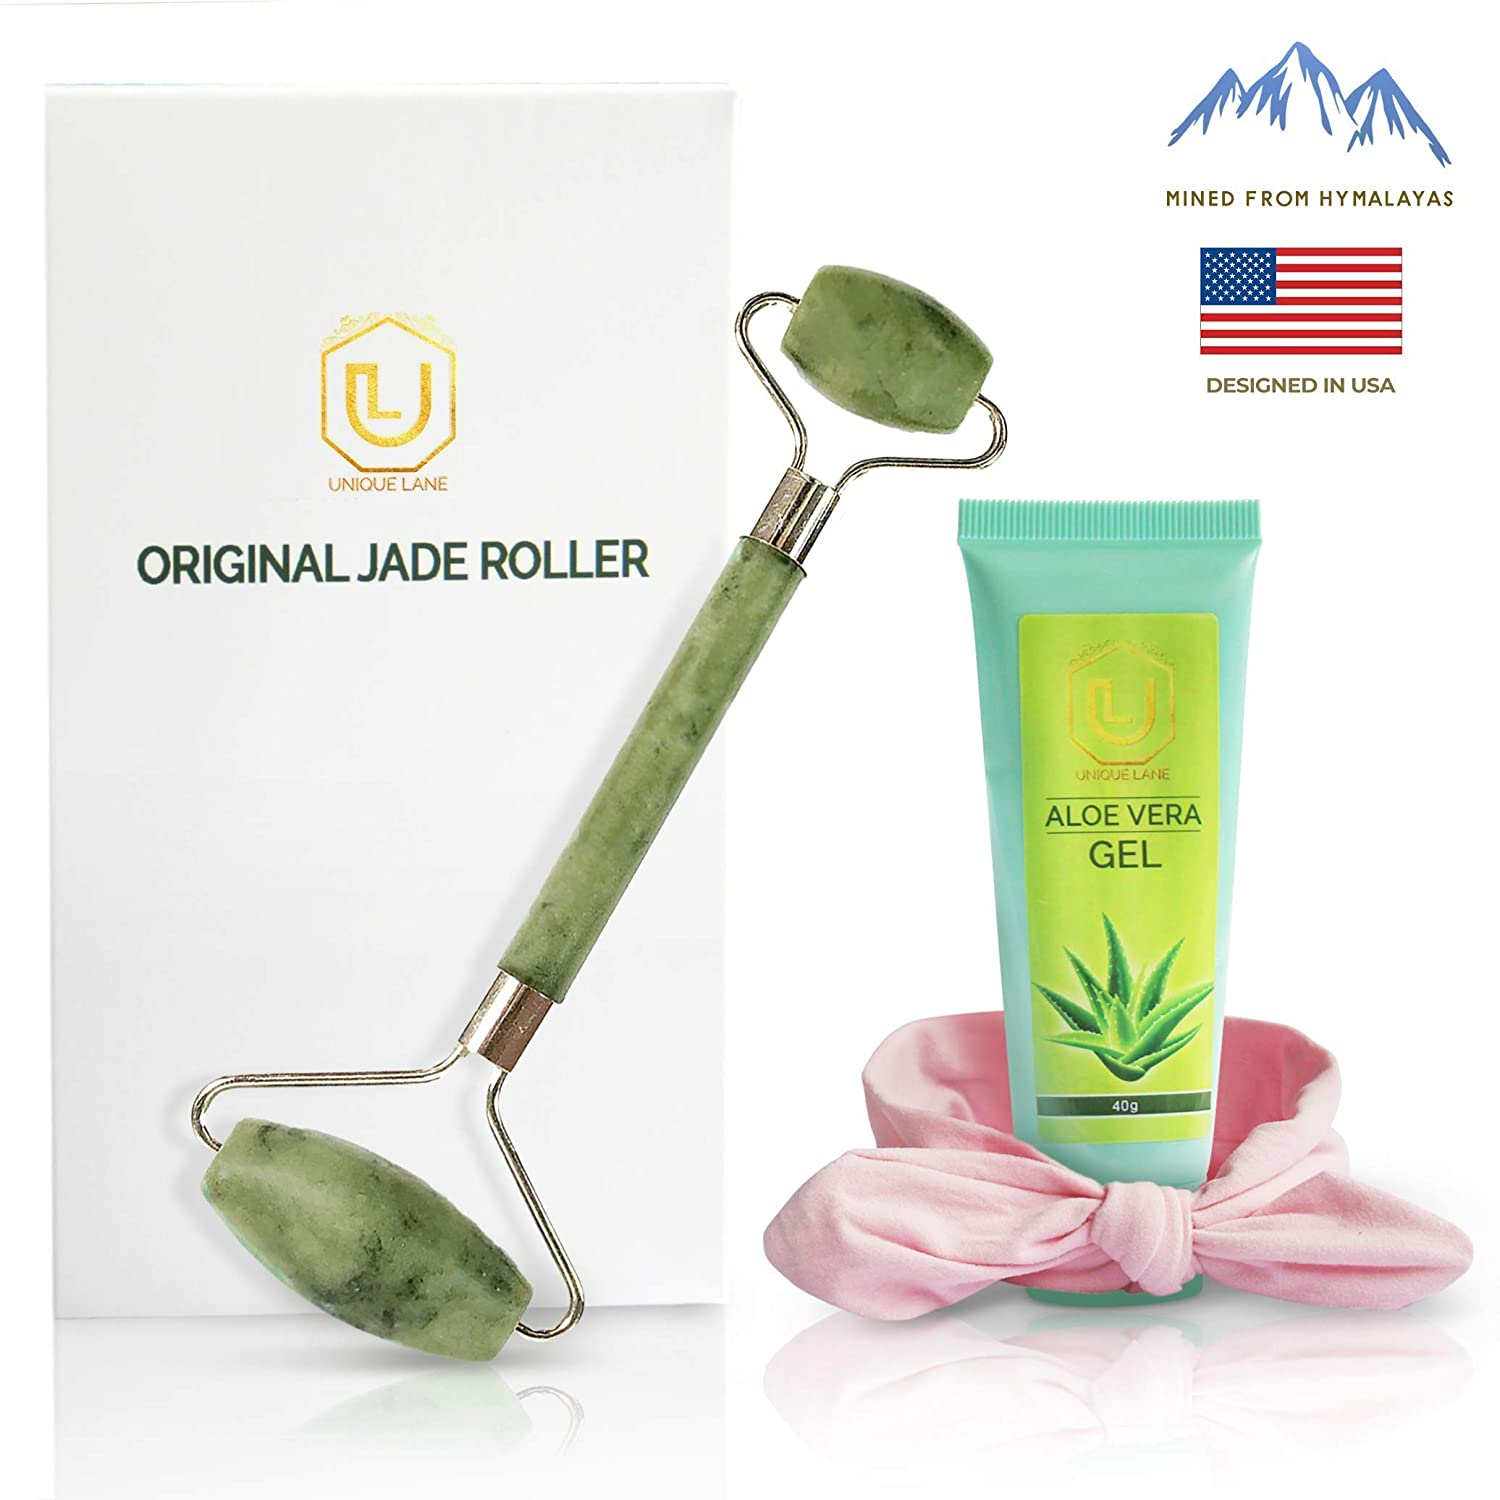 Jade Roller & Aloe Vera Gel Massage Tool Set   Anti Aging Massage Kit   Healing Slimming and Wrinkle Treatment For Face Neck & Body   jade Roller For Face Set includes Headband. Unique Lane